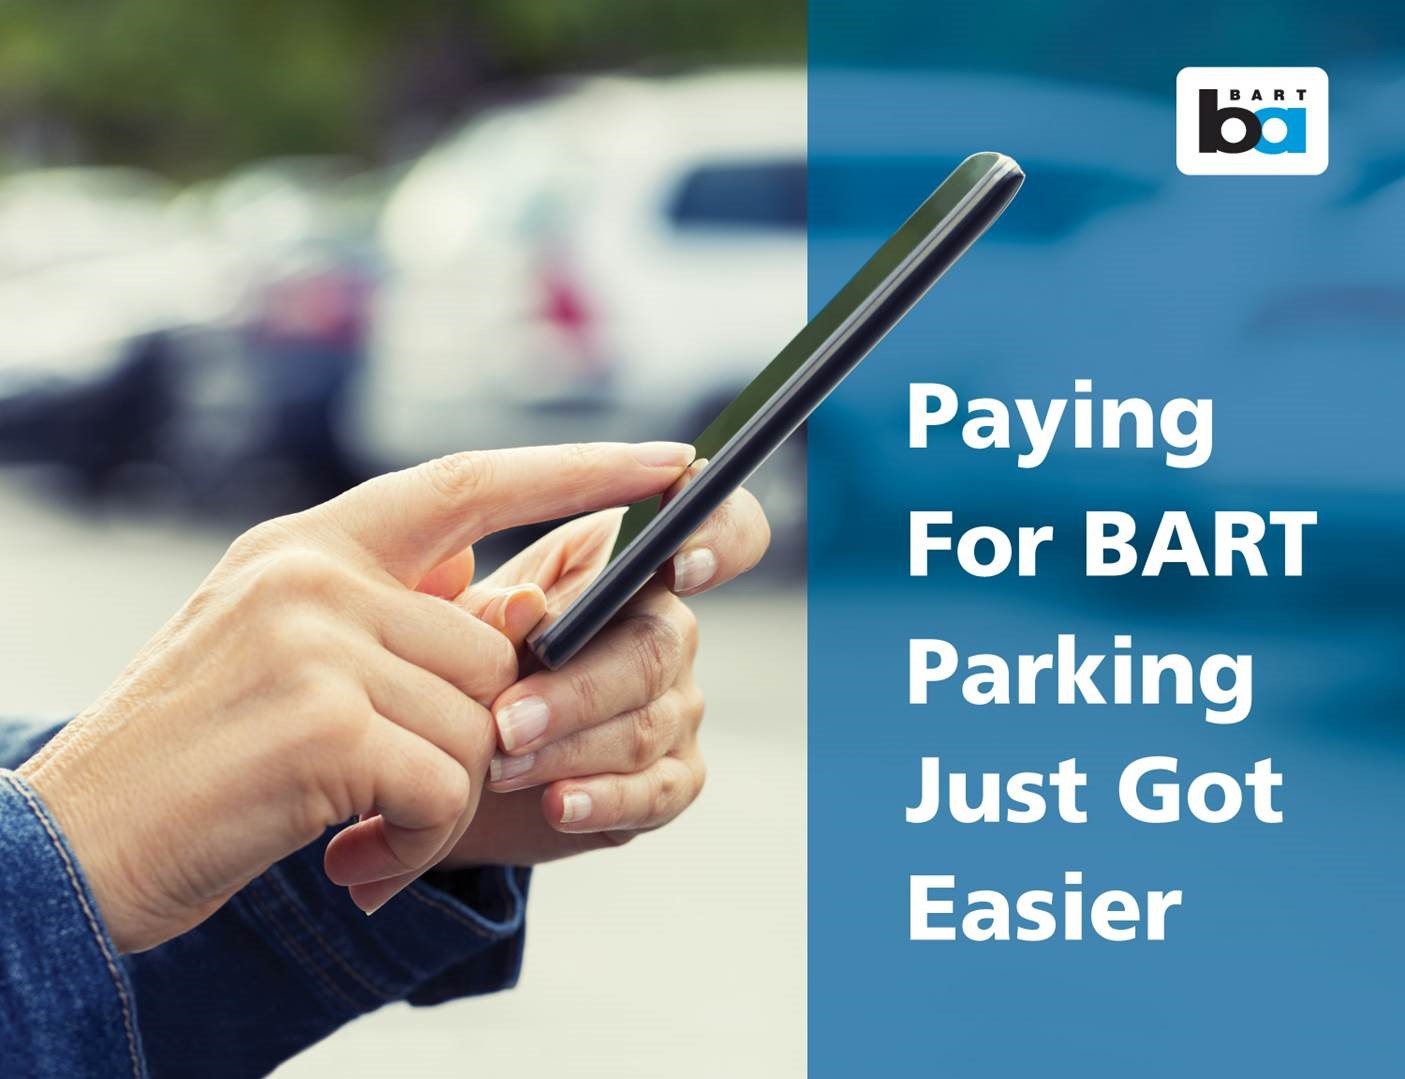 Paying for parking just got easier